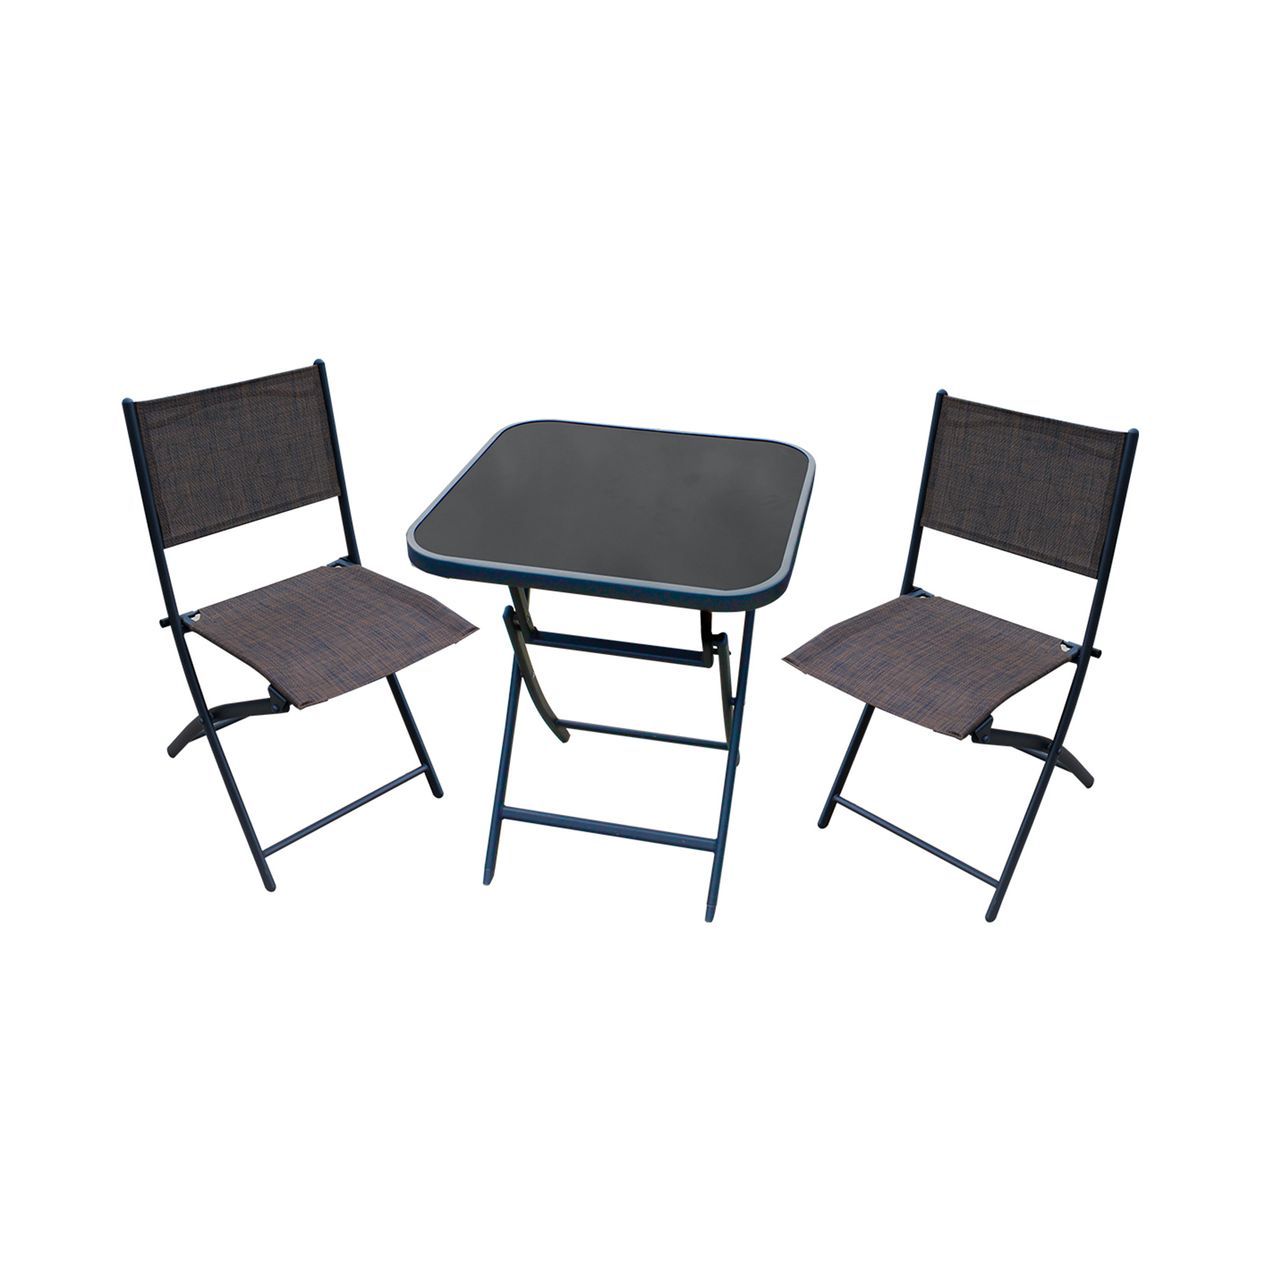 Table2 Table2 Chaises Bistrot Bistrot Set1 Bistrot Set1 Chaises Table2 Set1 Chaises Set1 Bistrot hCsrdxtBoQ